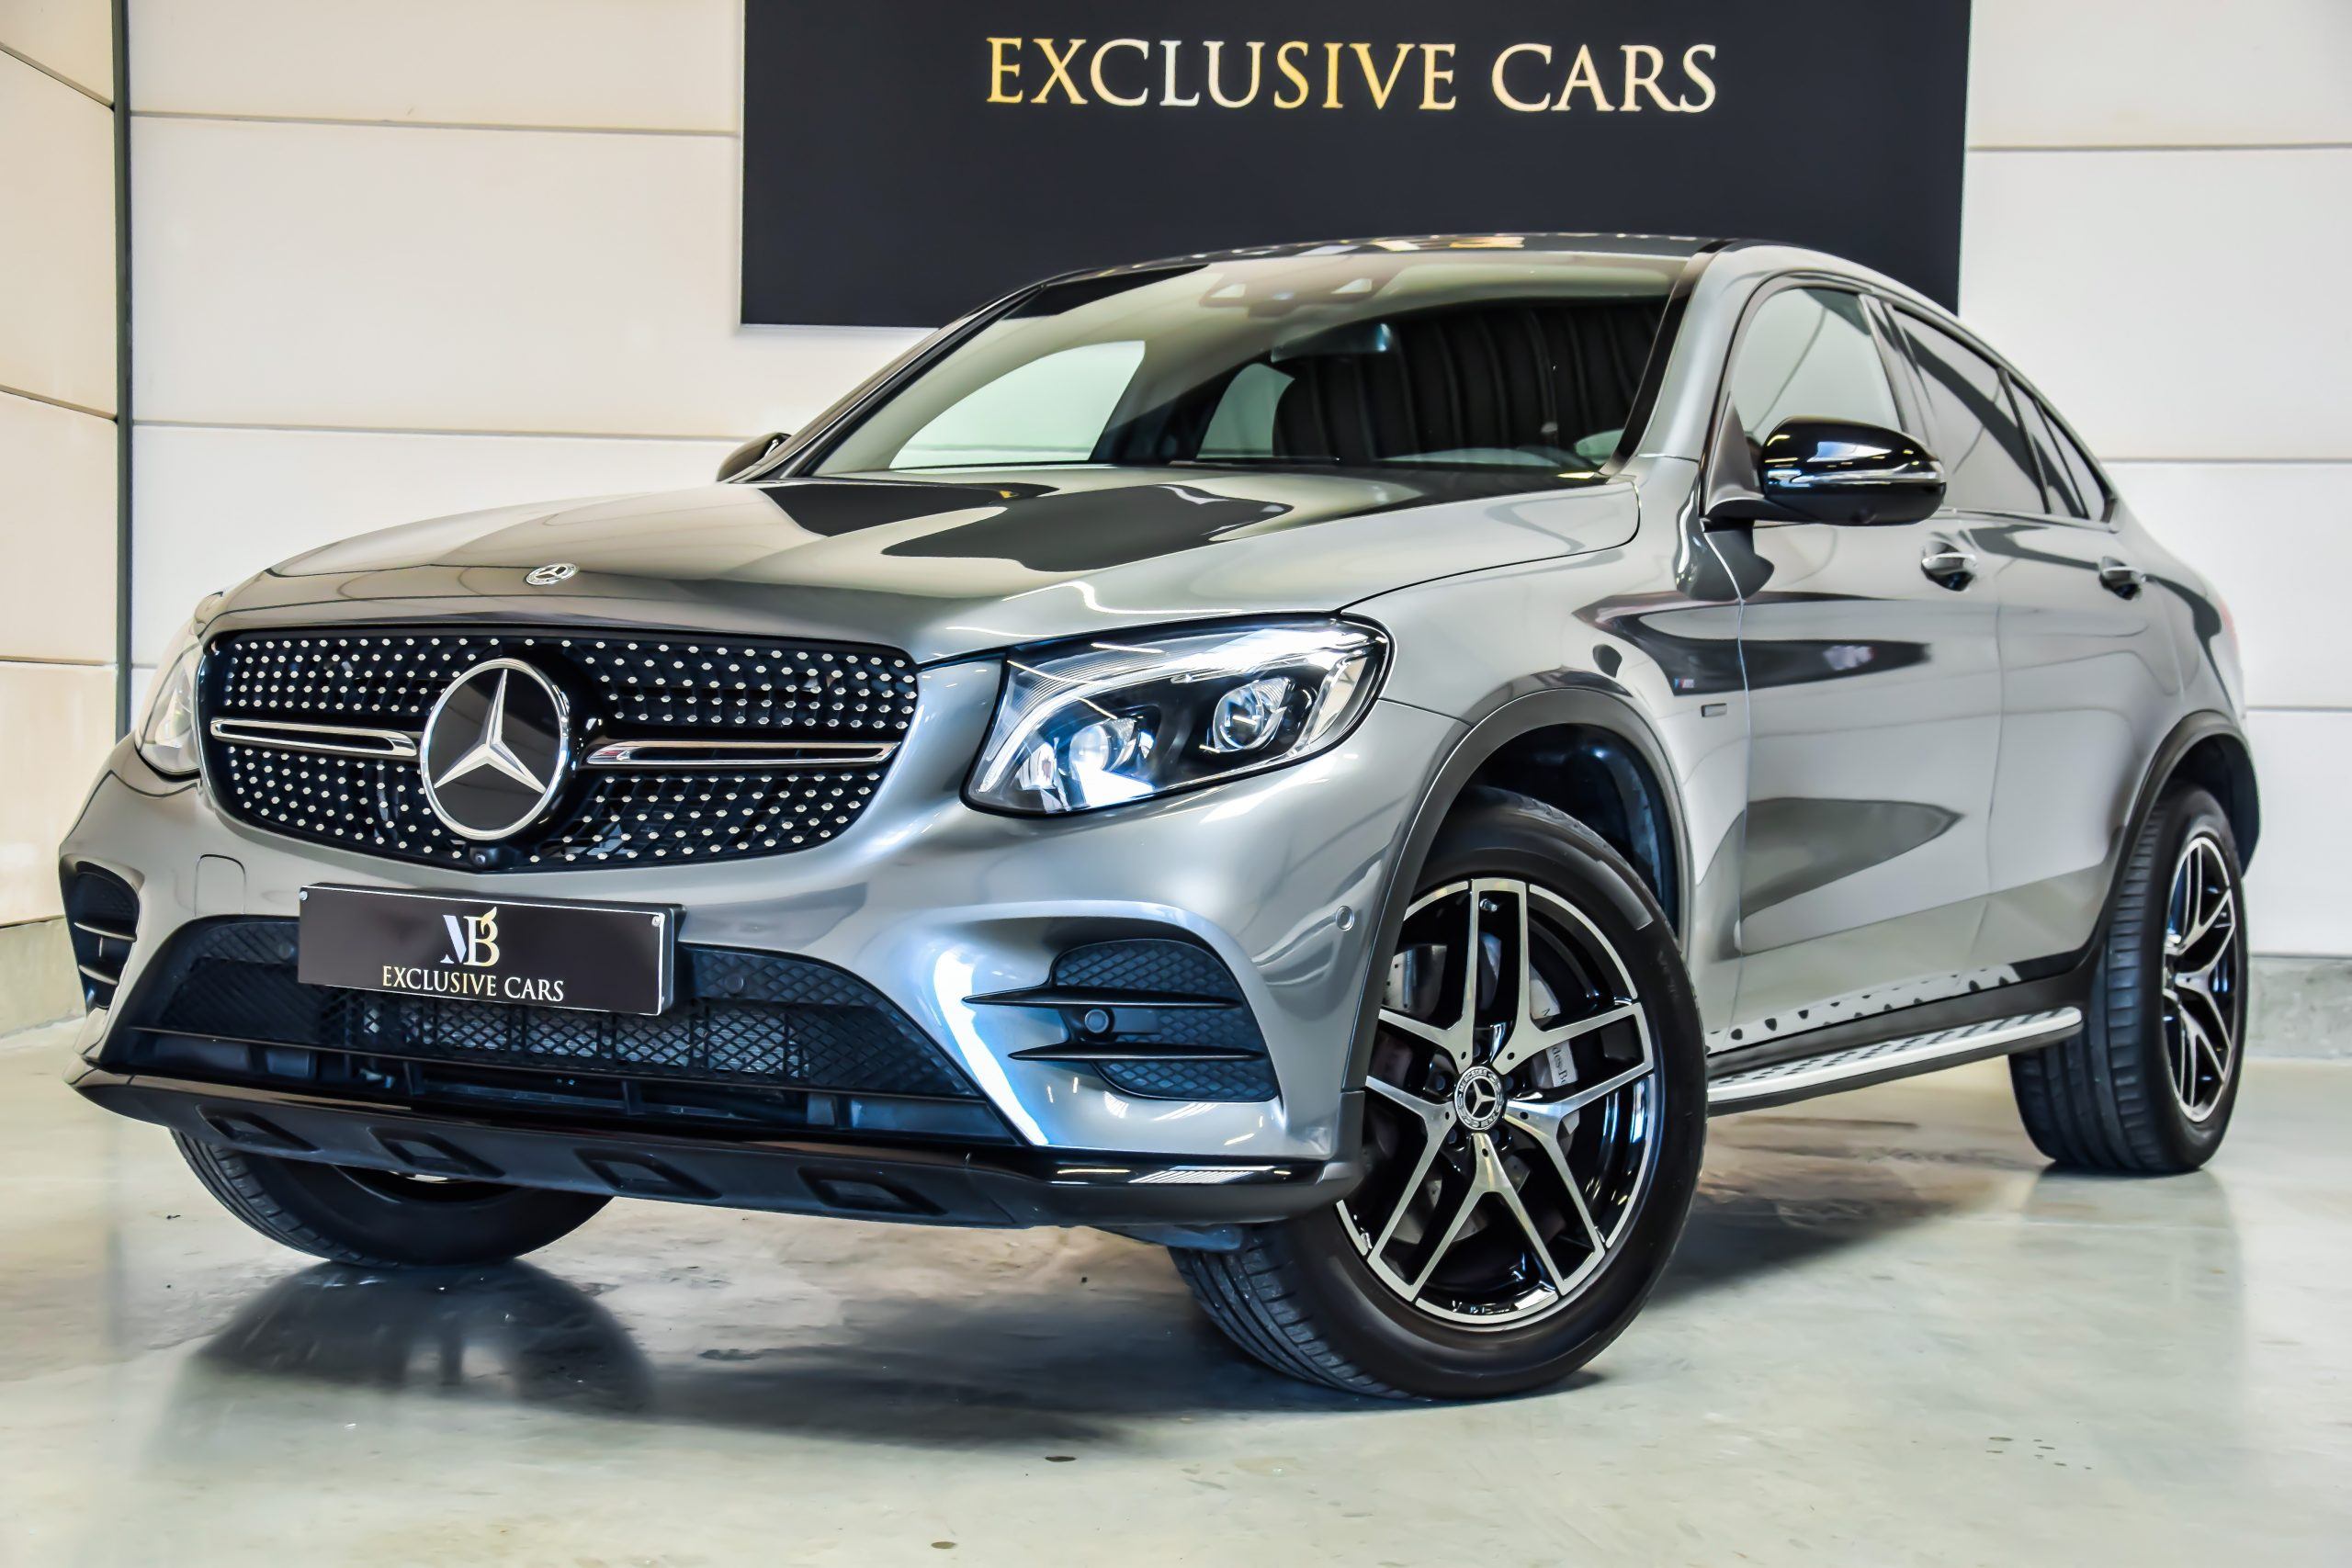 Mercedes-Benz GLC 350e Plug-In Hybride Coupé AMG-Sportpakket 01/2018 – Full Option!!